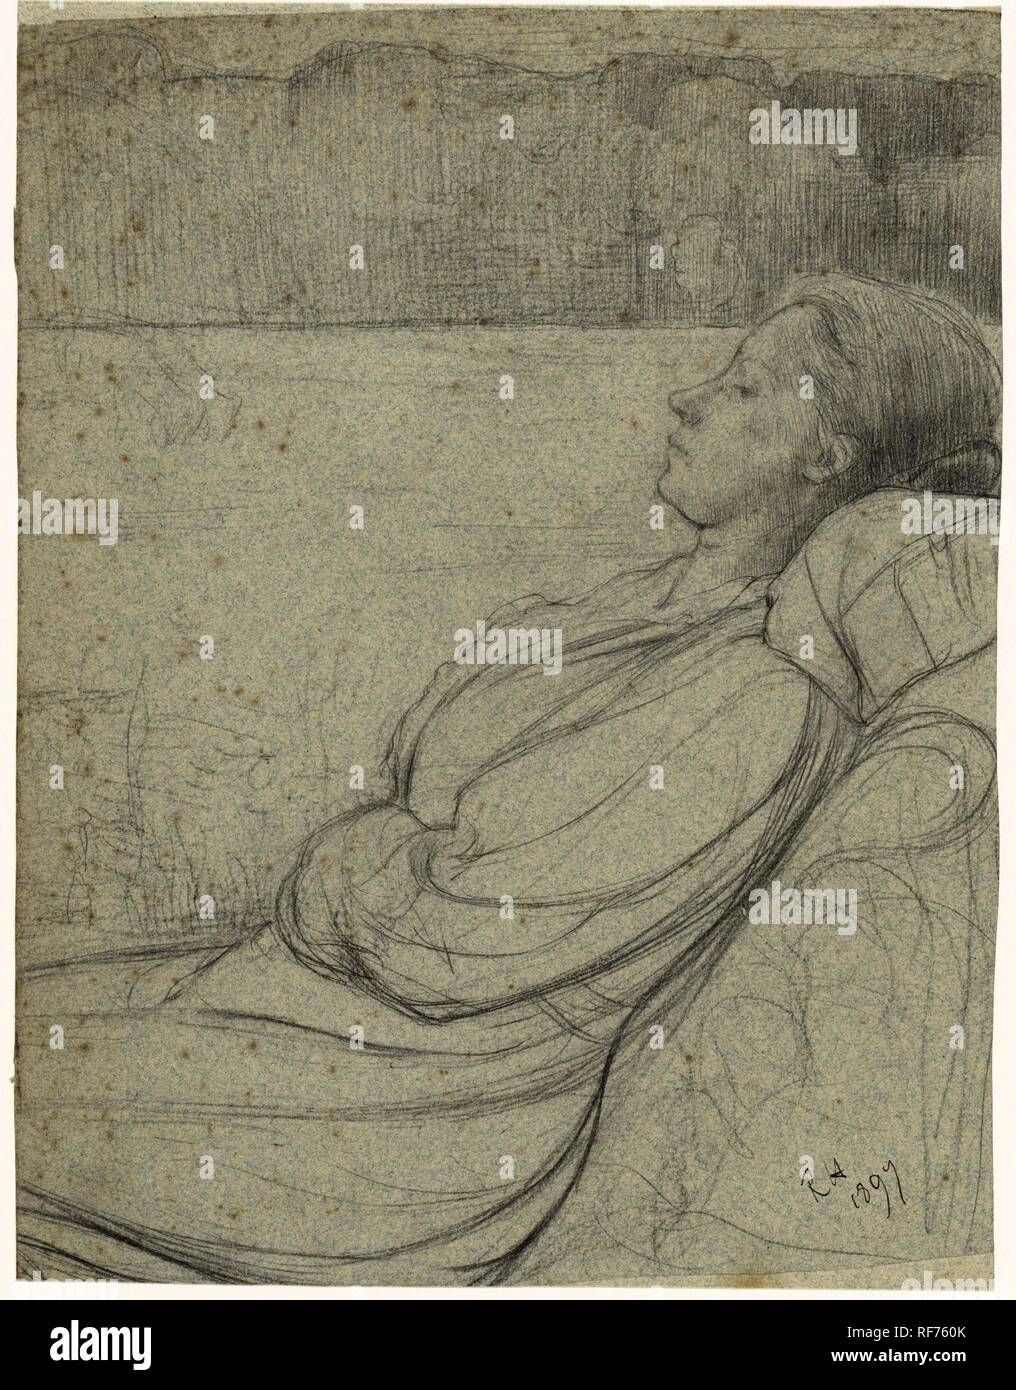 Henriette Roland Holst Van Der Schalk Lying In A Chair